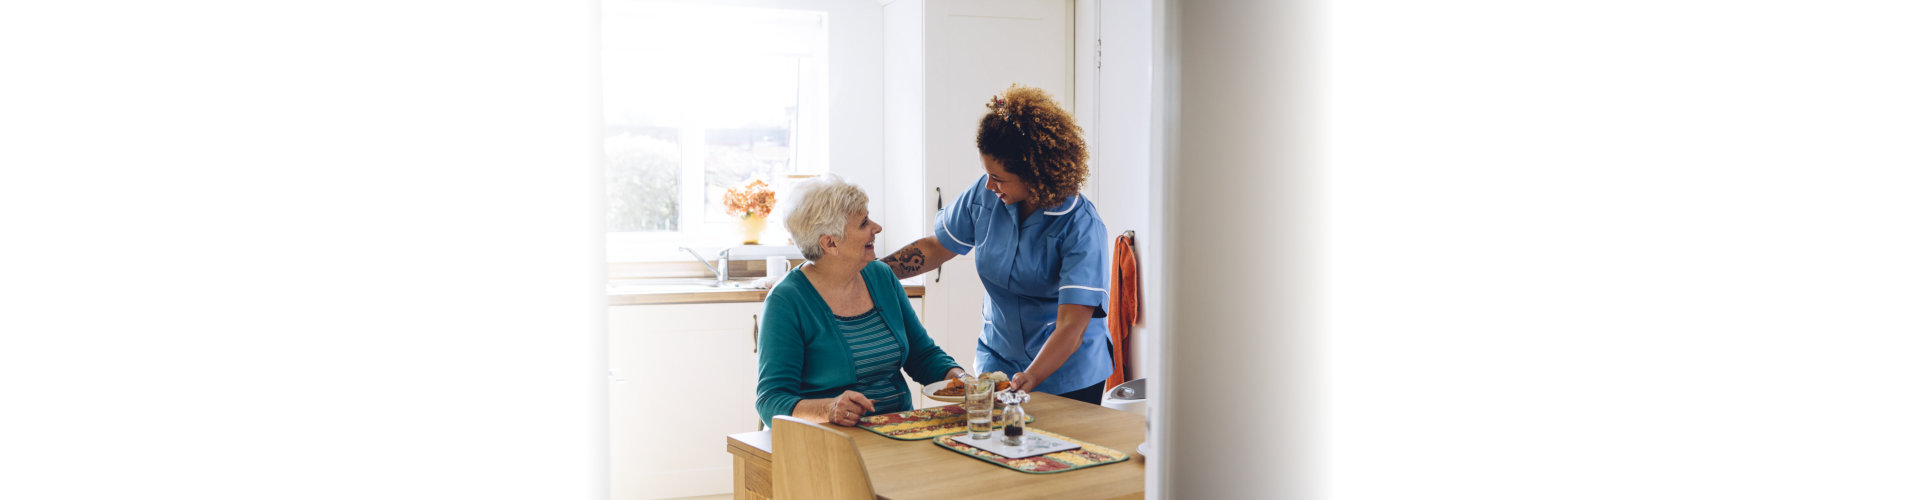 nurse giving food to patient